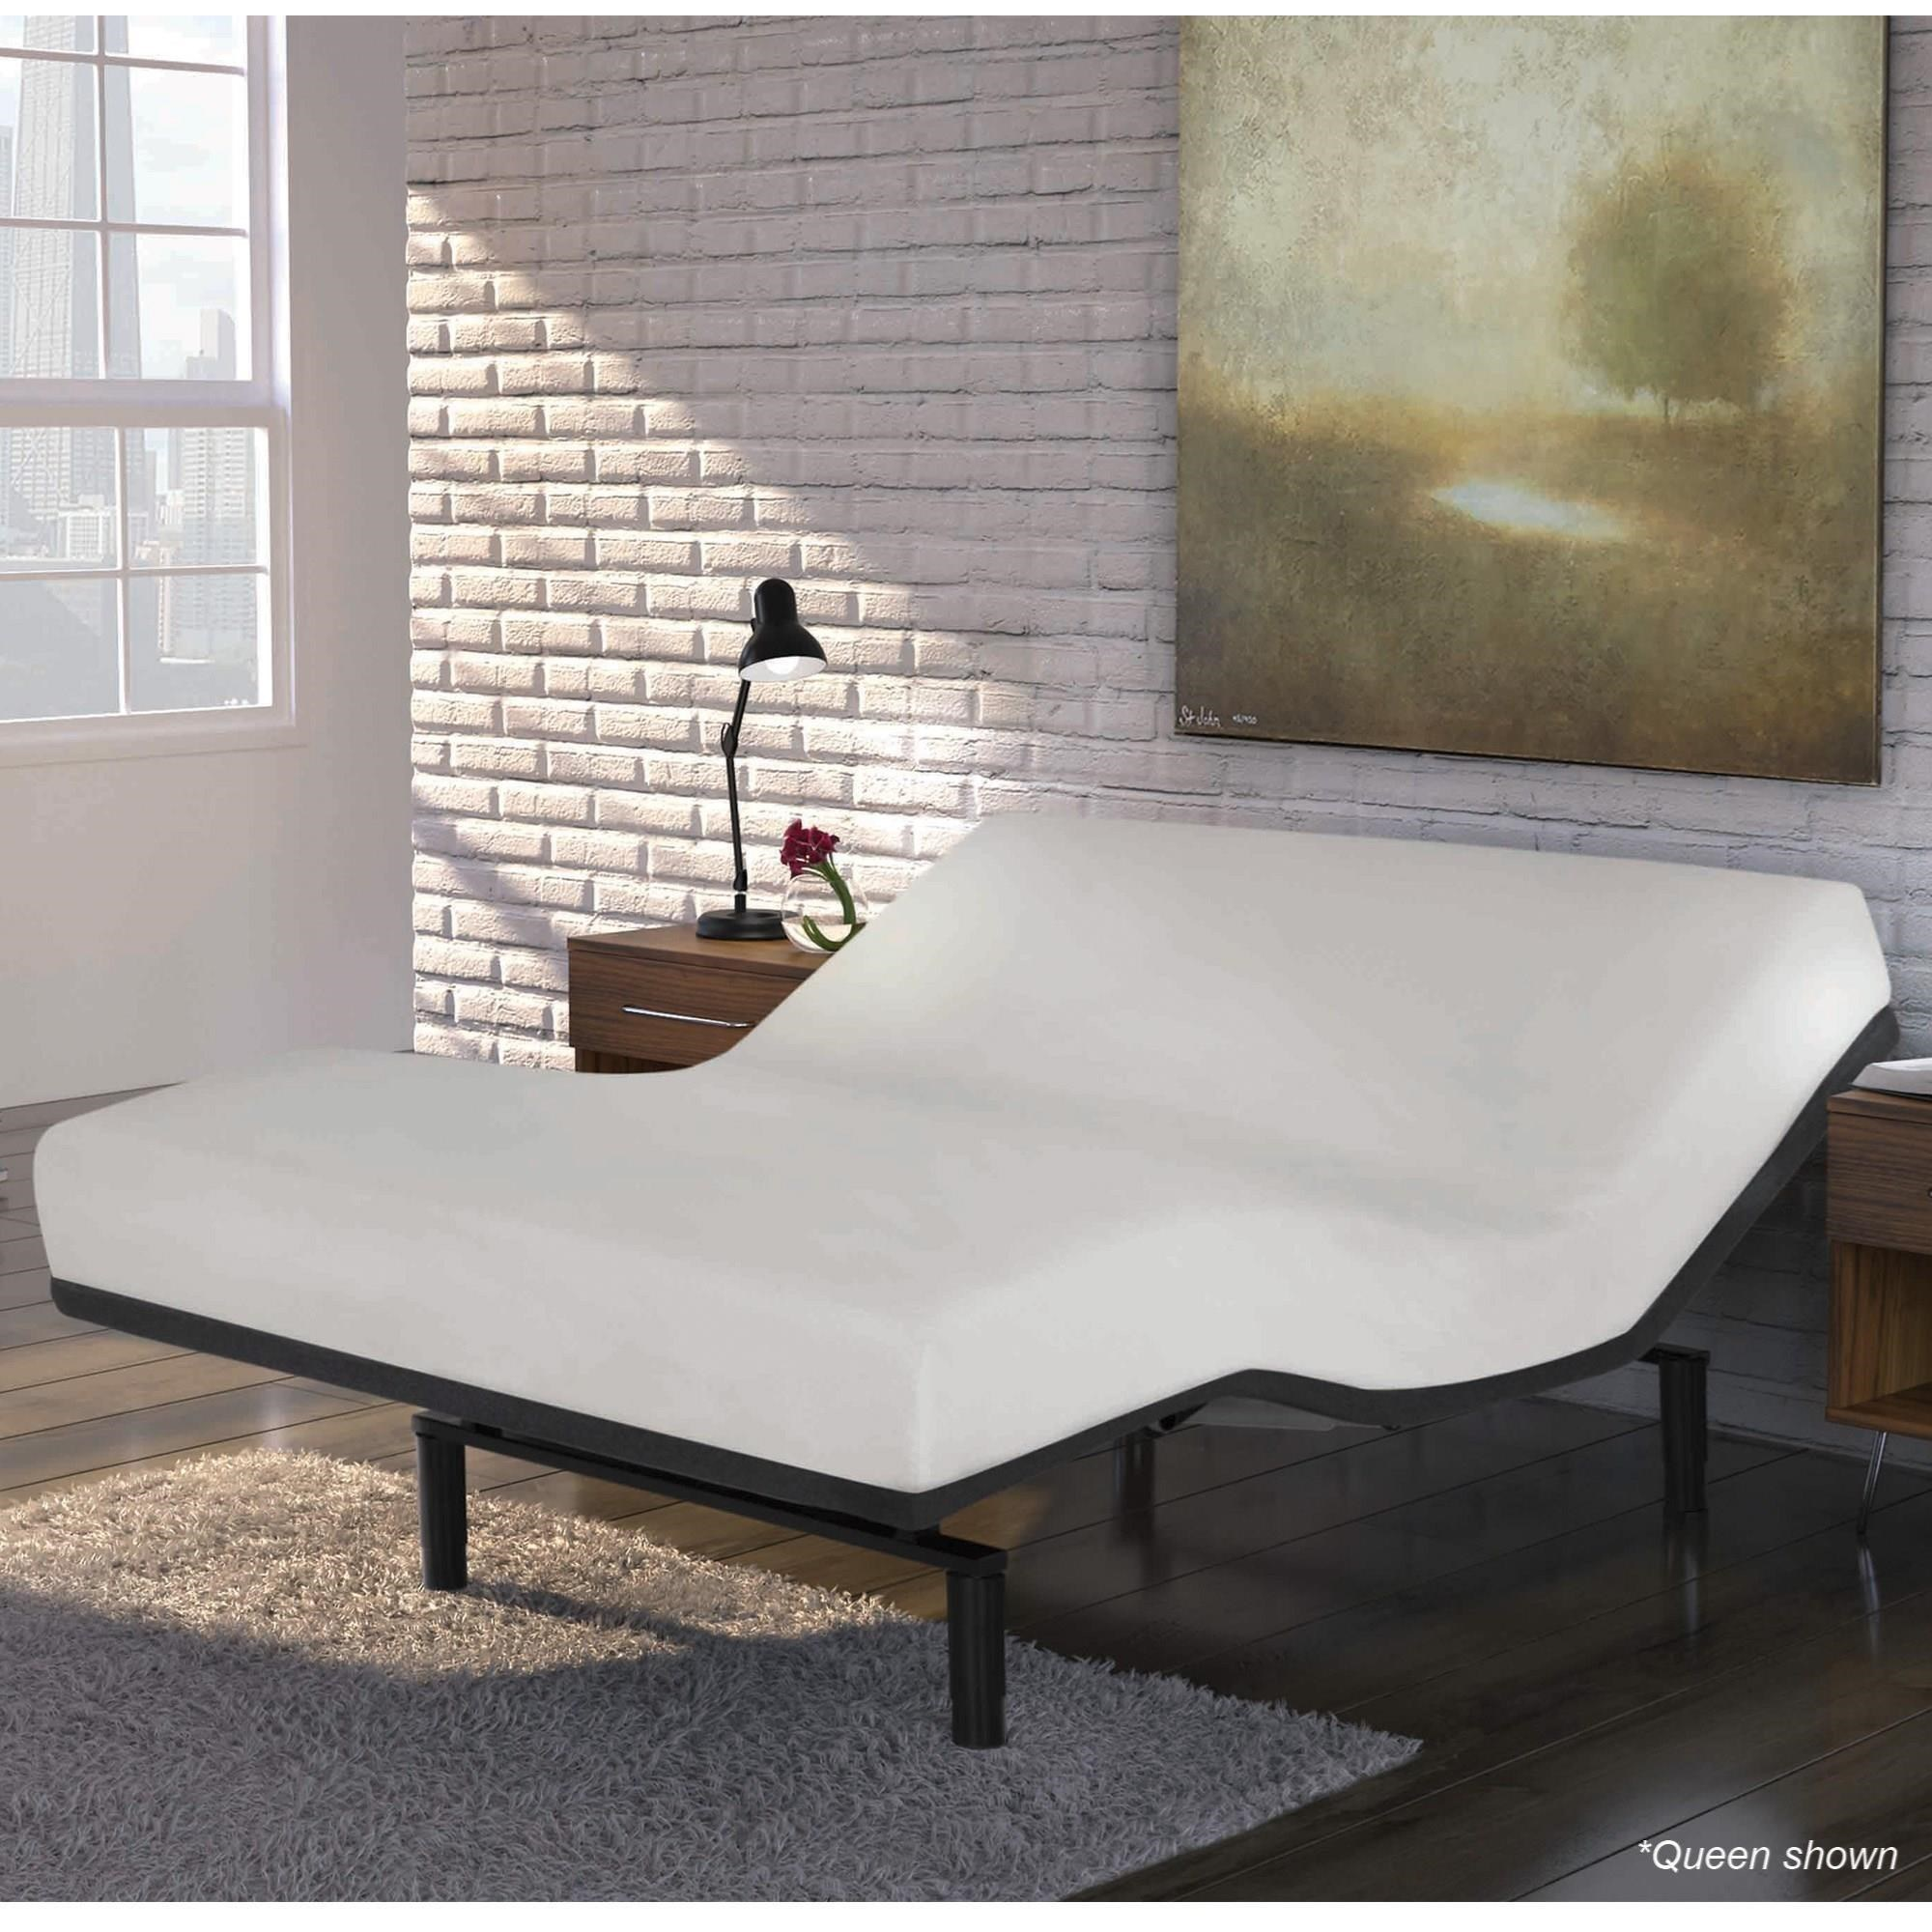 split queen simplicity 30 lowprofile adjustable bed base with full body massage and movement